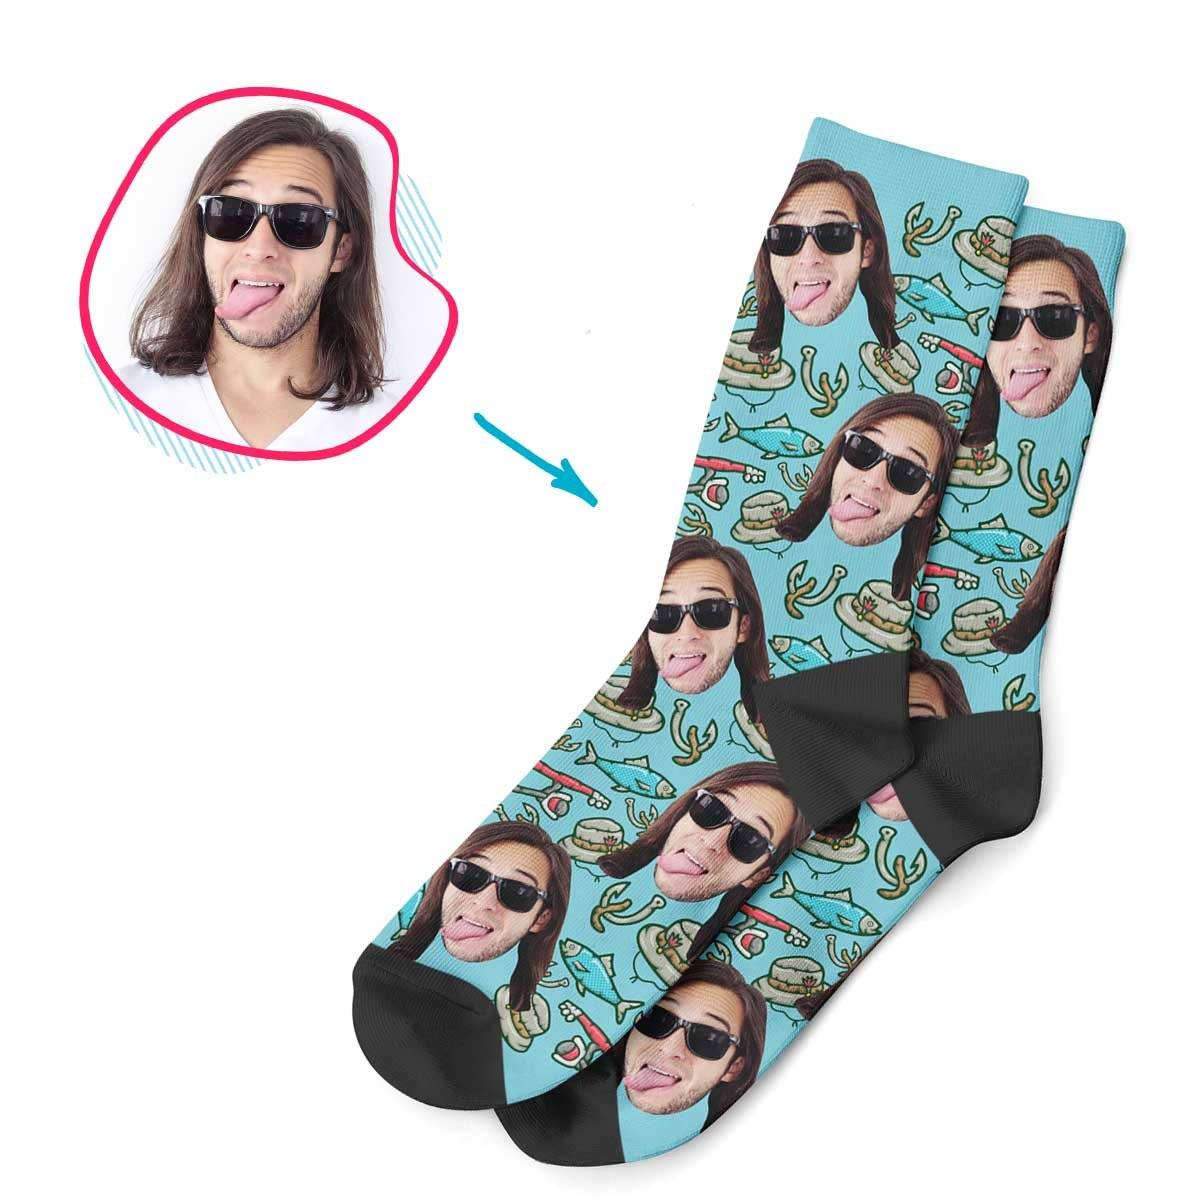 Blue Fishing personalized socks with photo of face printed on them